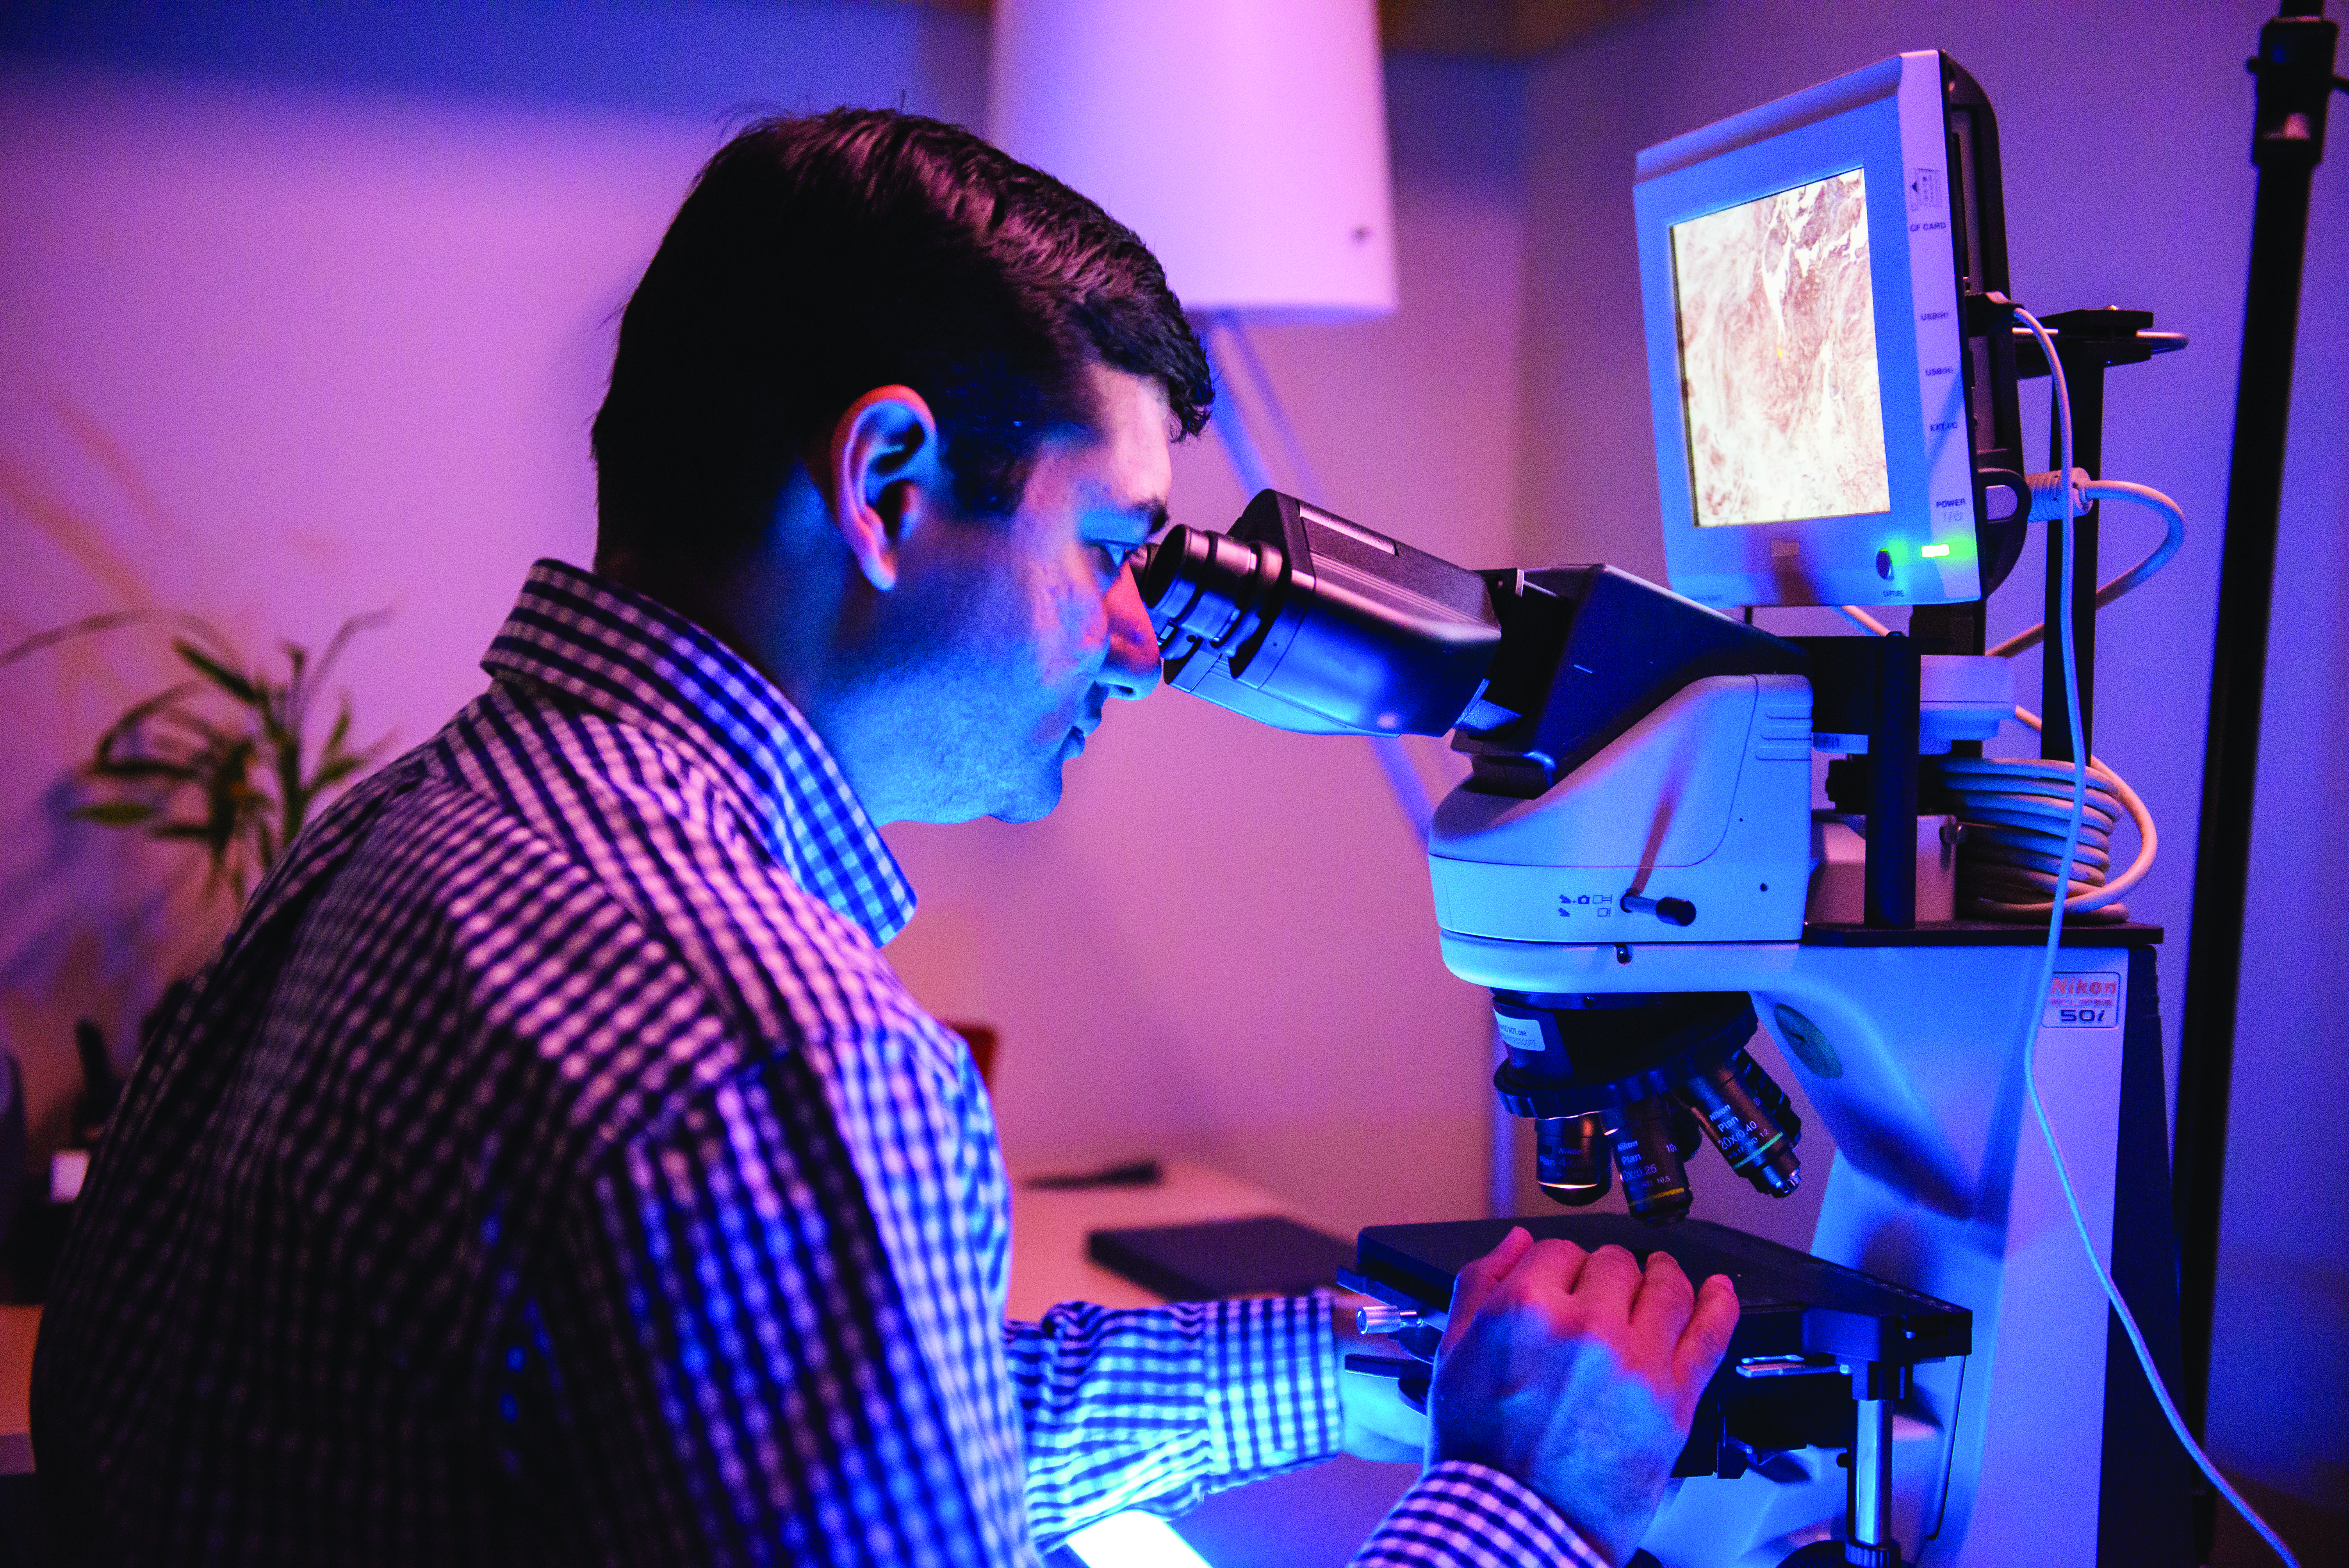 UConn School of Dental Medicine oral pathologist Easwar Natarajan, BDS, D.M.Sc., examines a sample under a microscope.